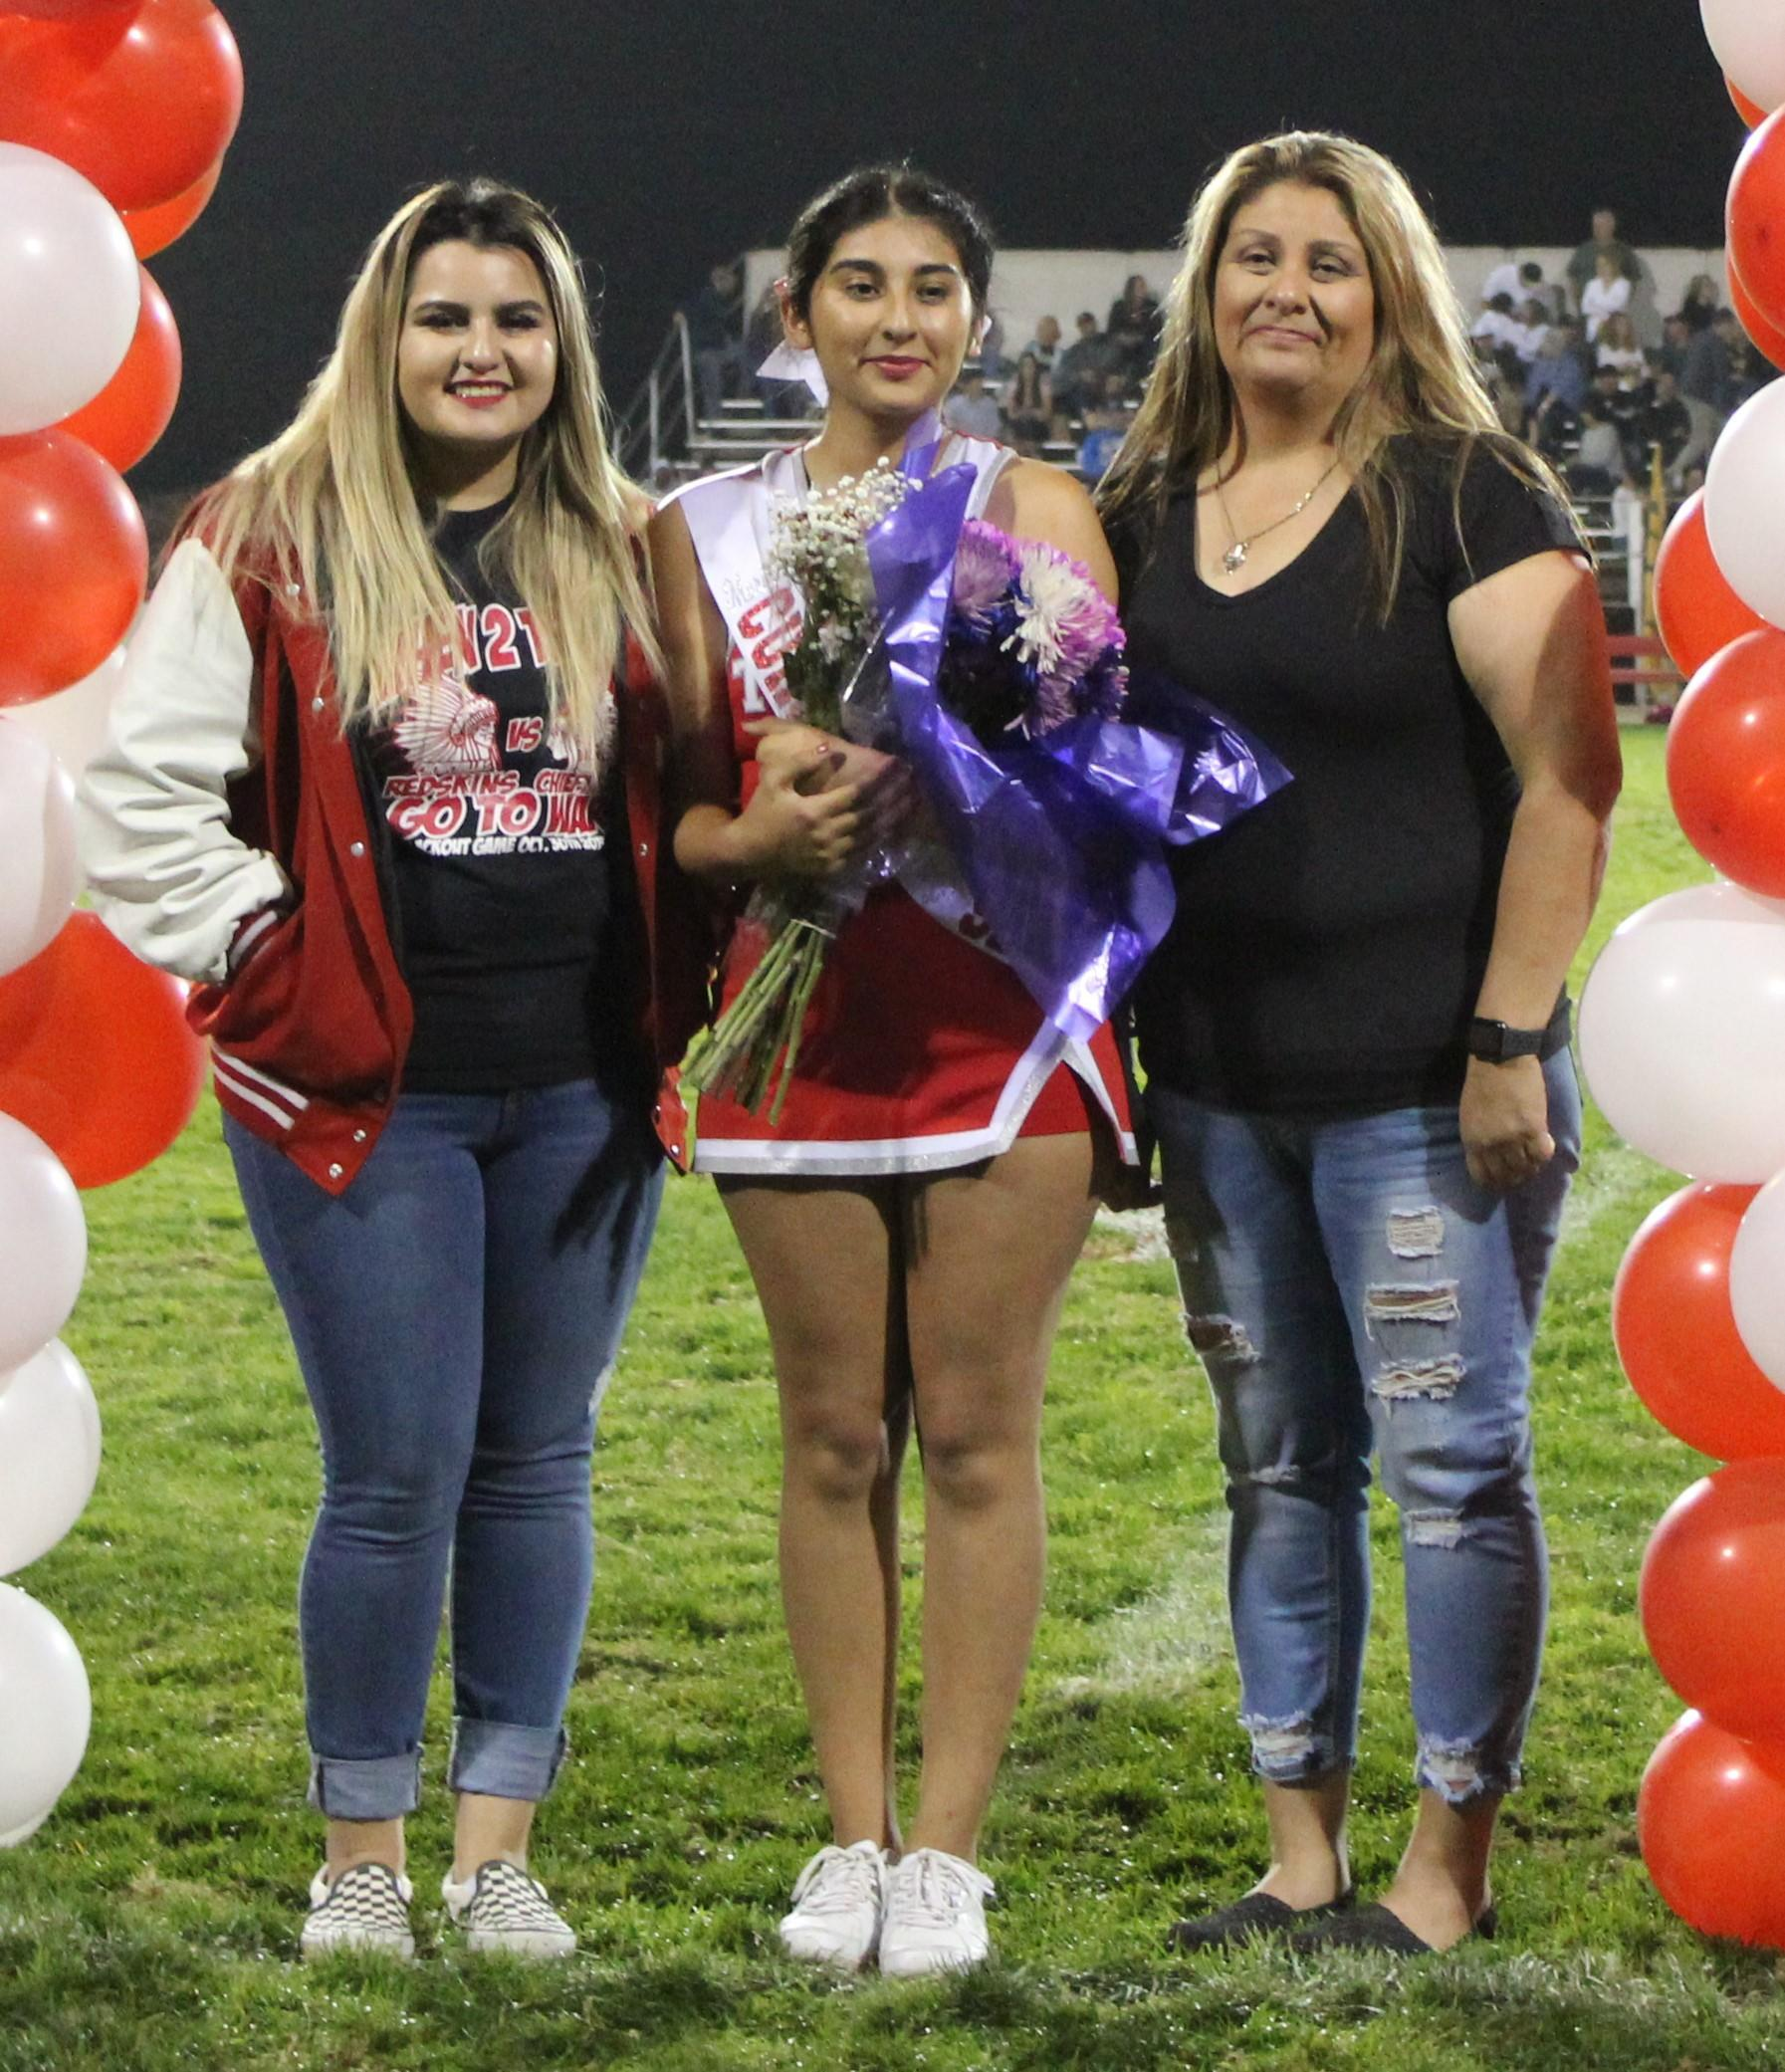 Marina Tovar and her supporters at Senior Night.